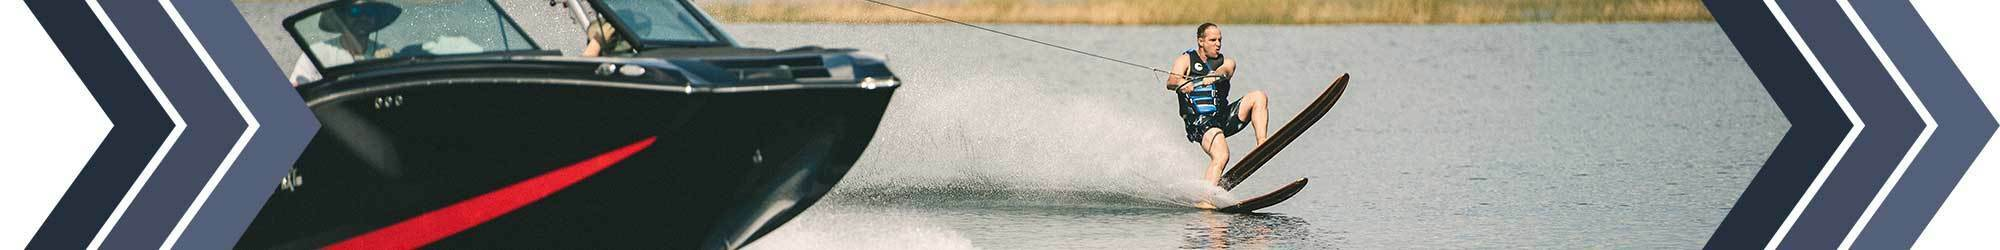 Combo Water Skis